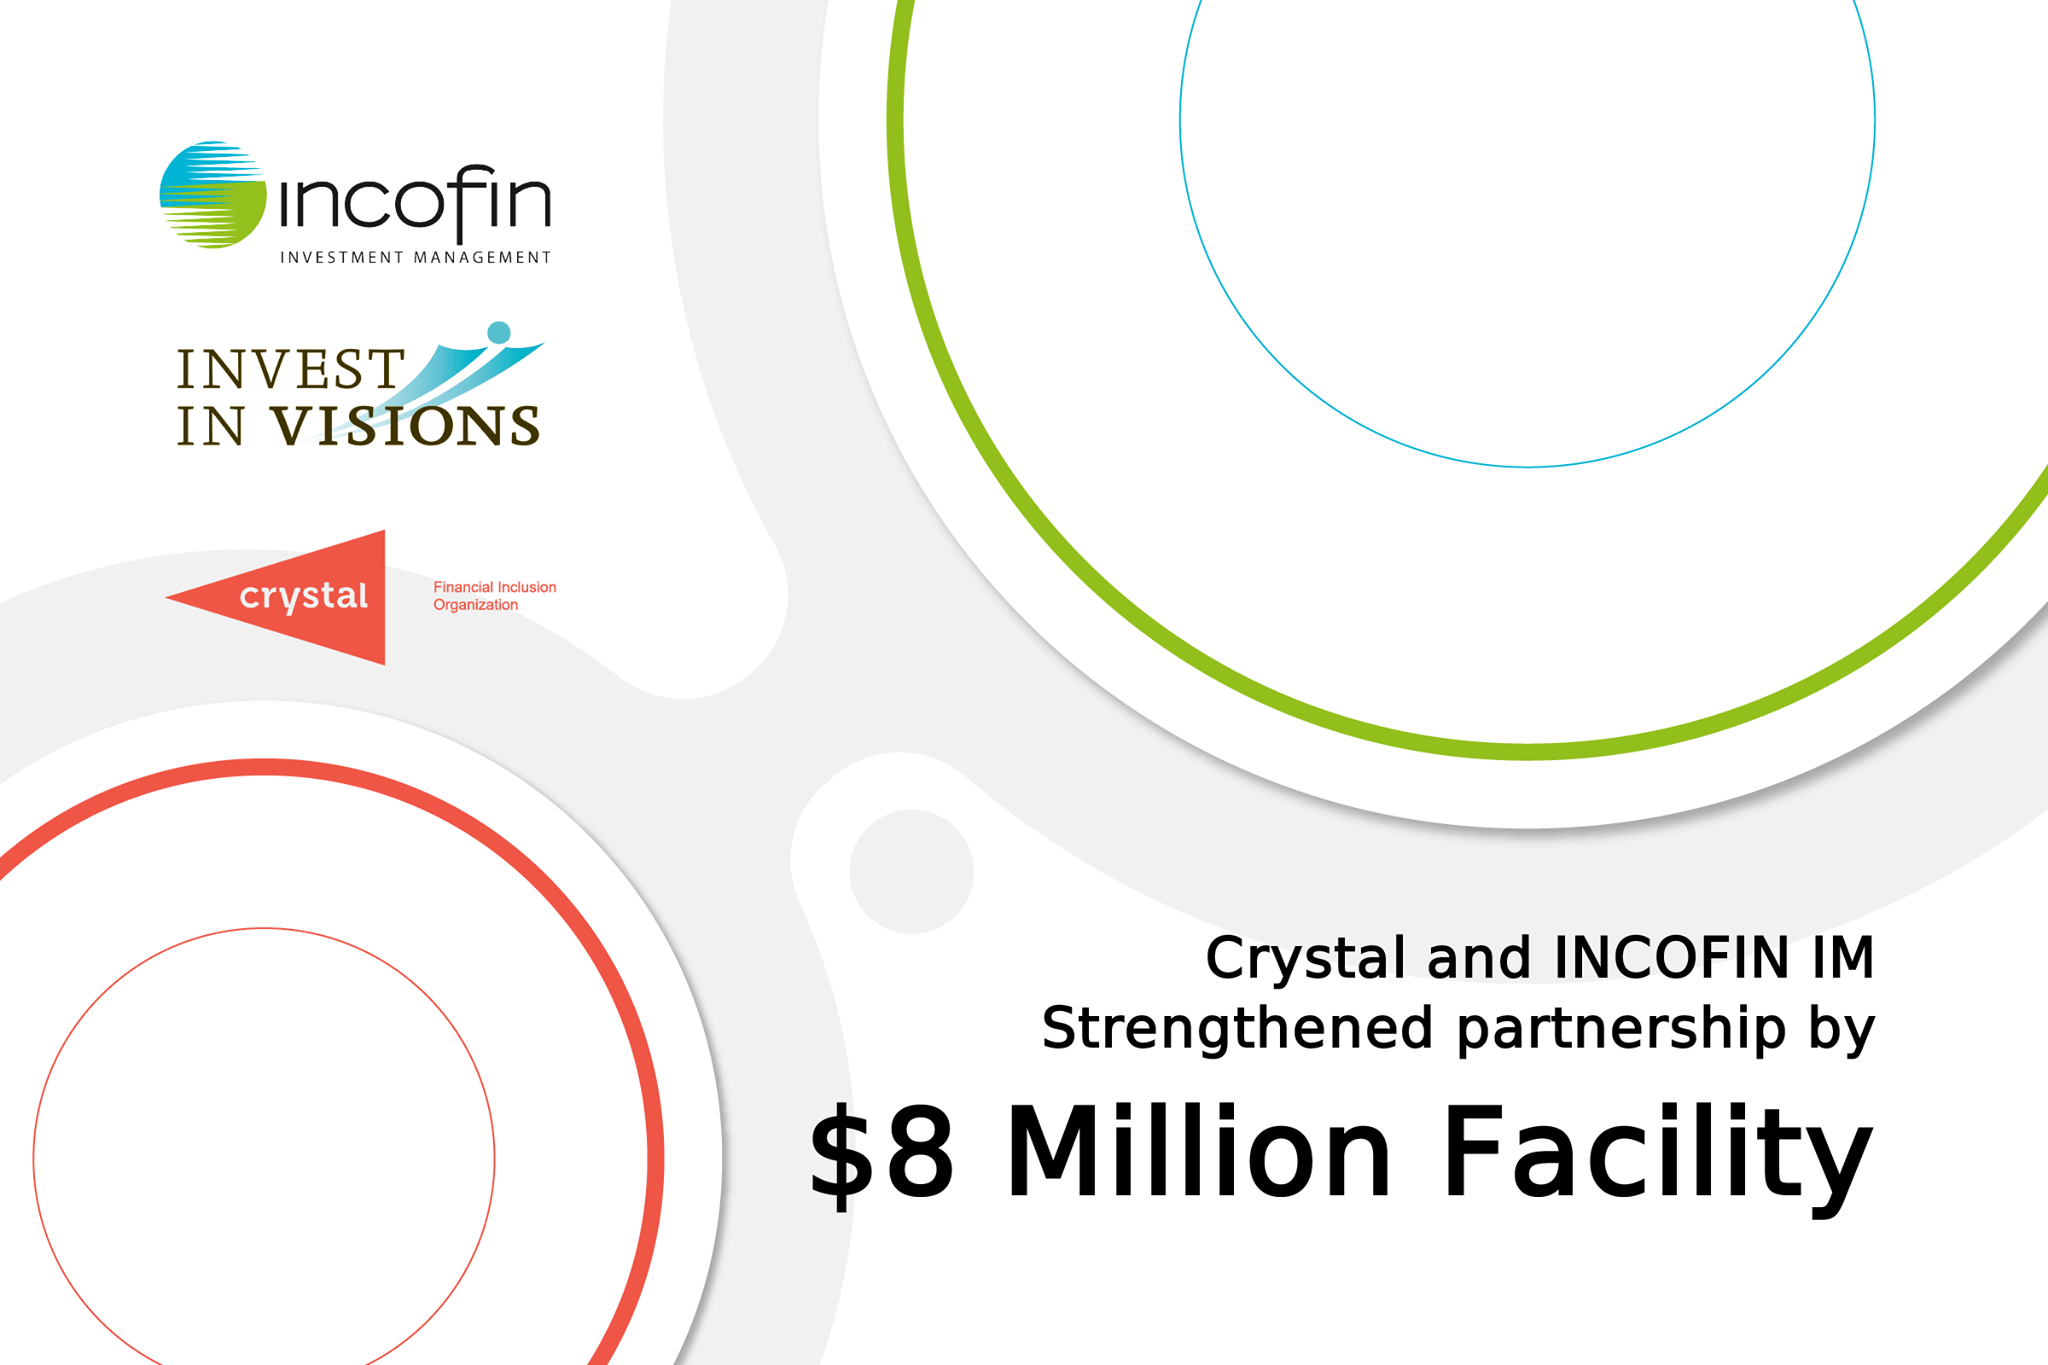 Crystal Confirms $8 Million Facility with INCOFIN IM